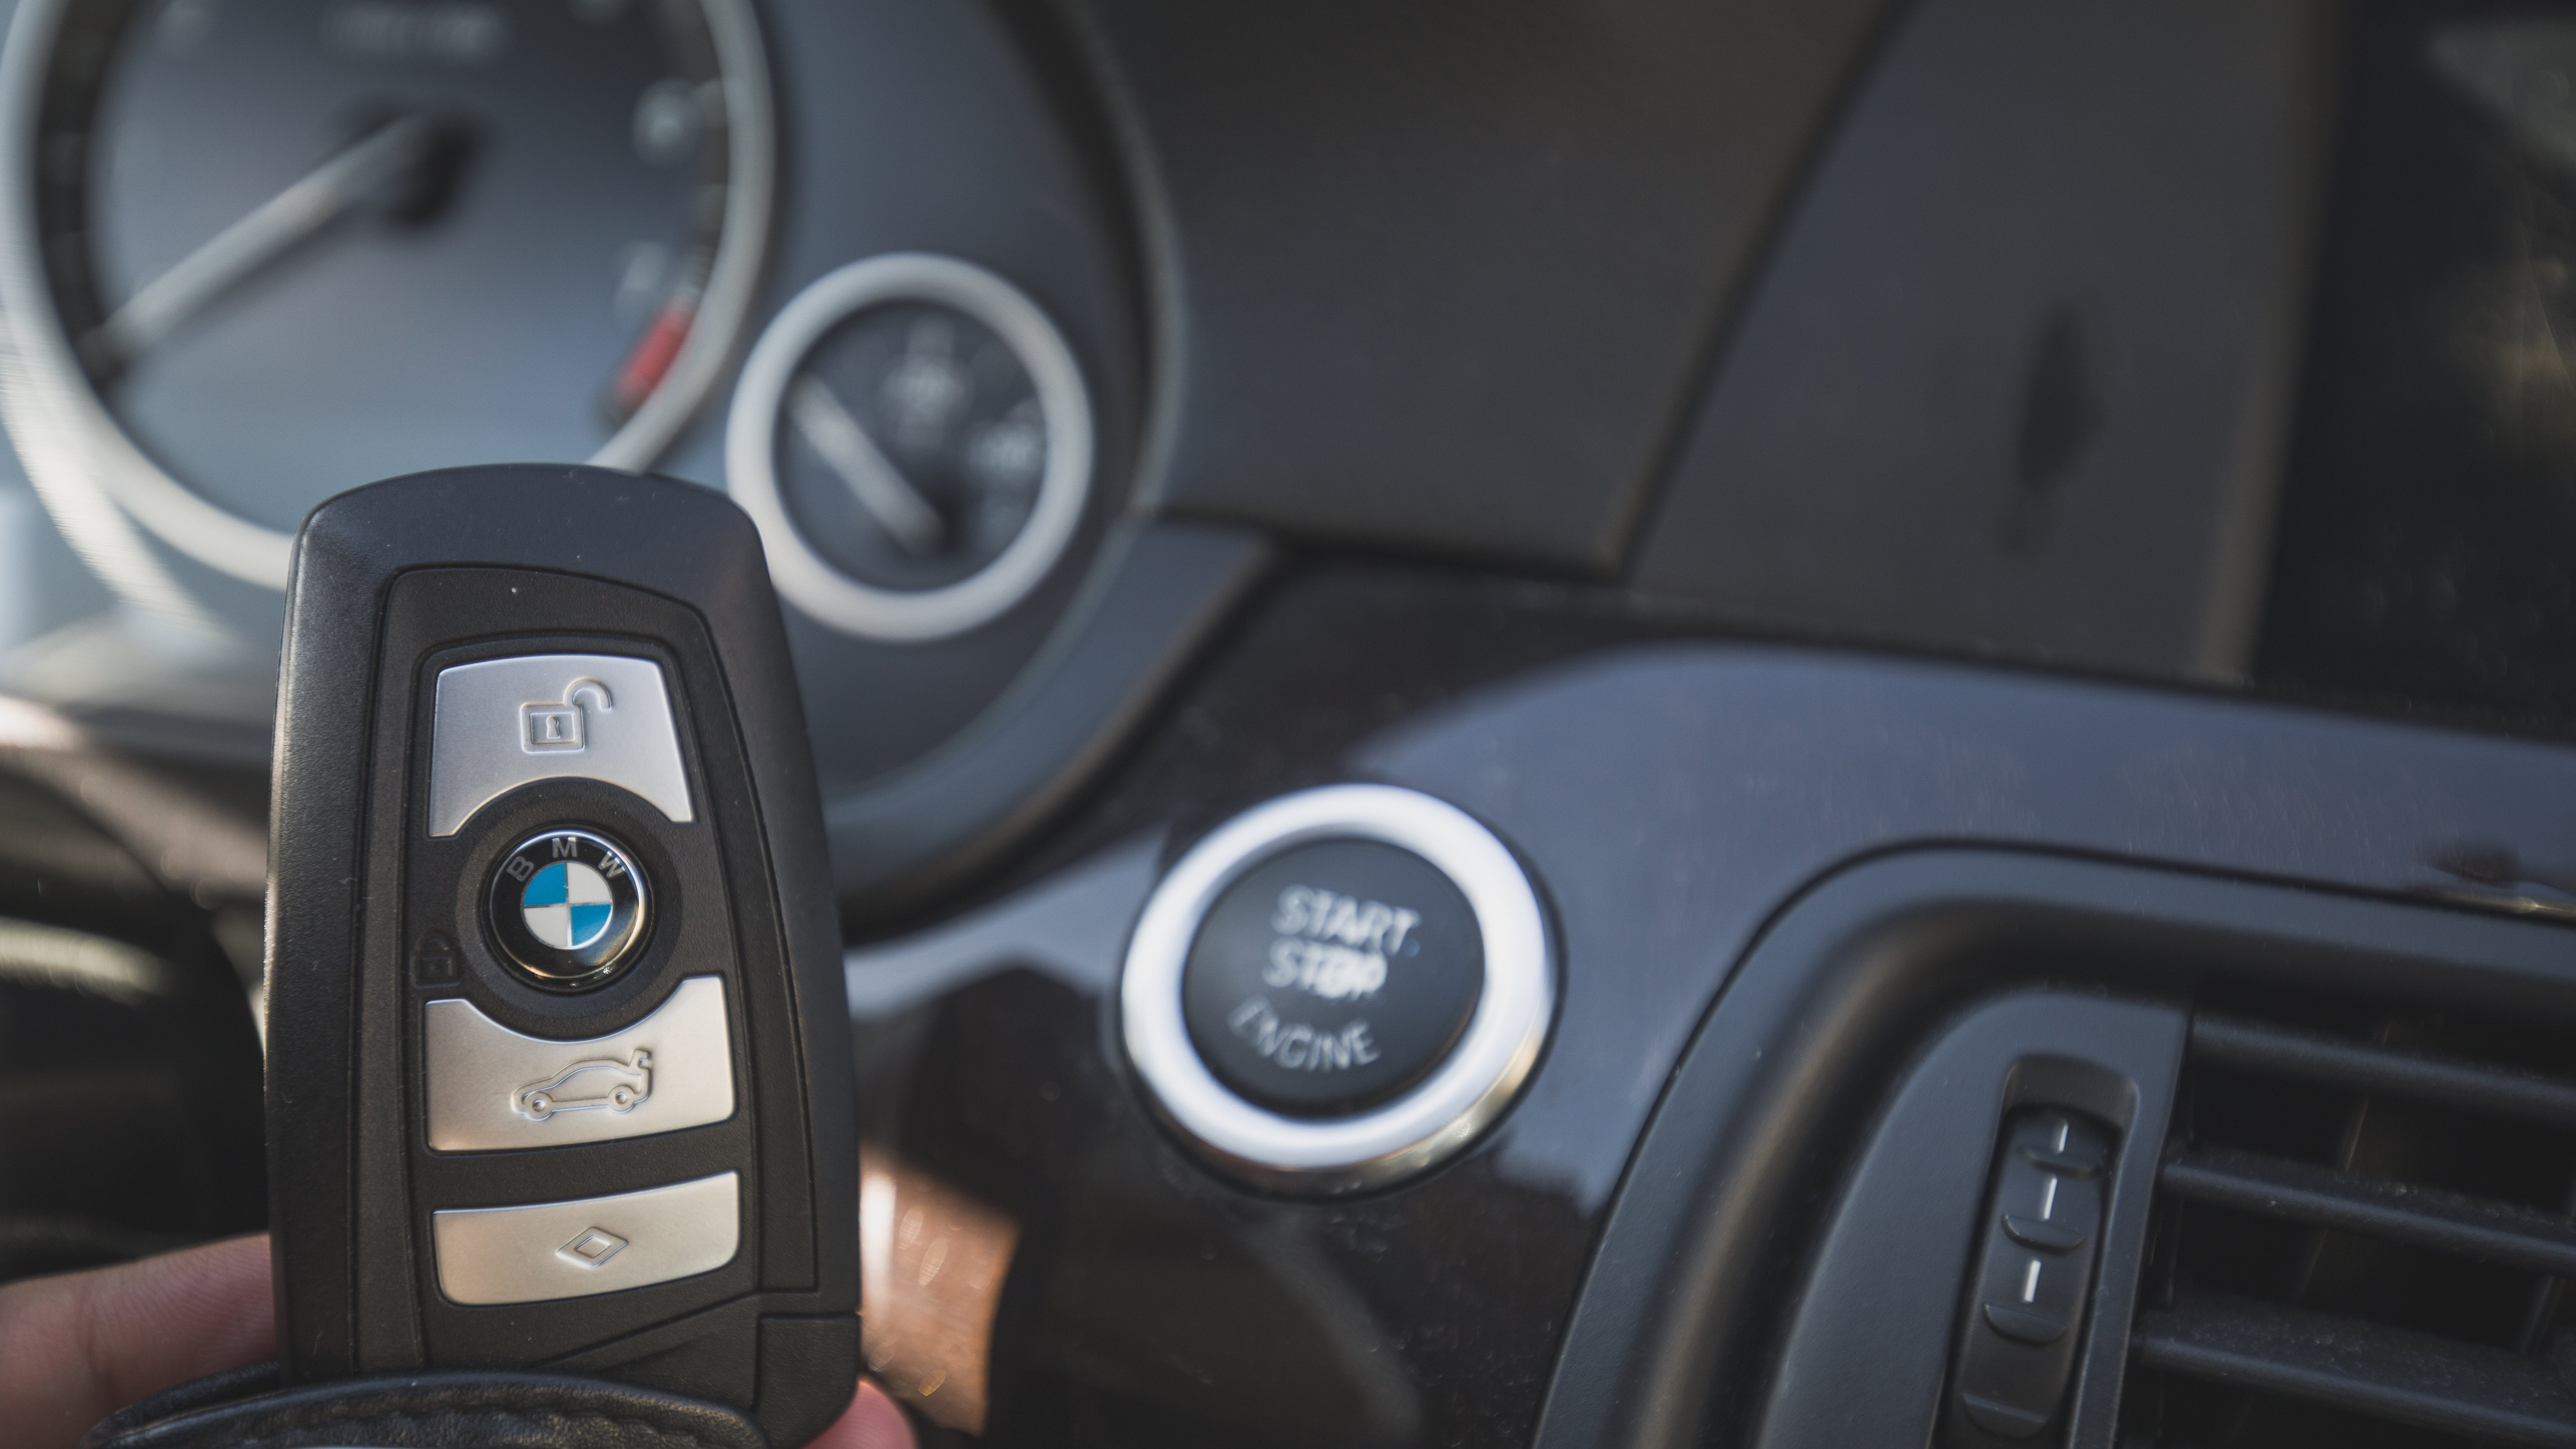 BMW Remote Central Locking fails from the Remote Fob